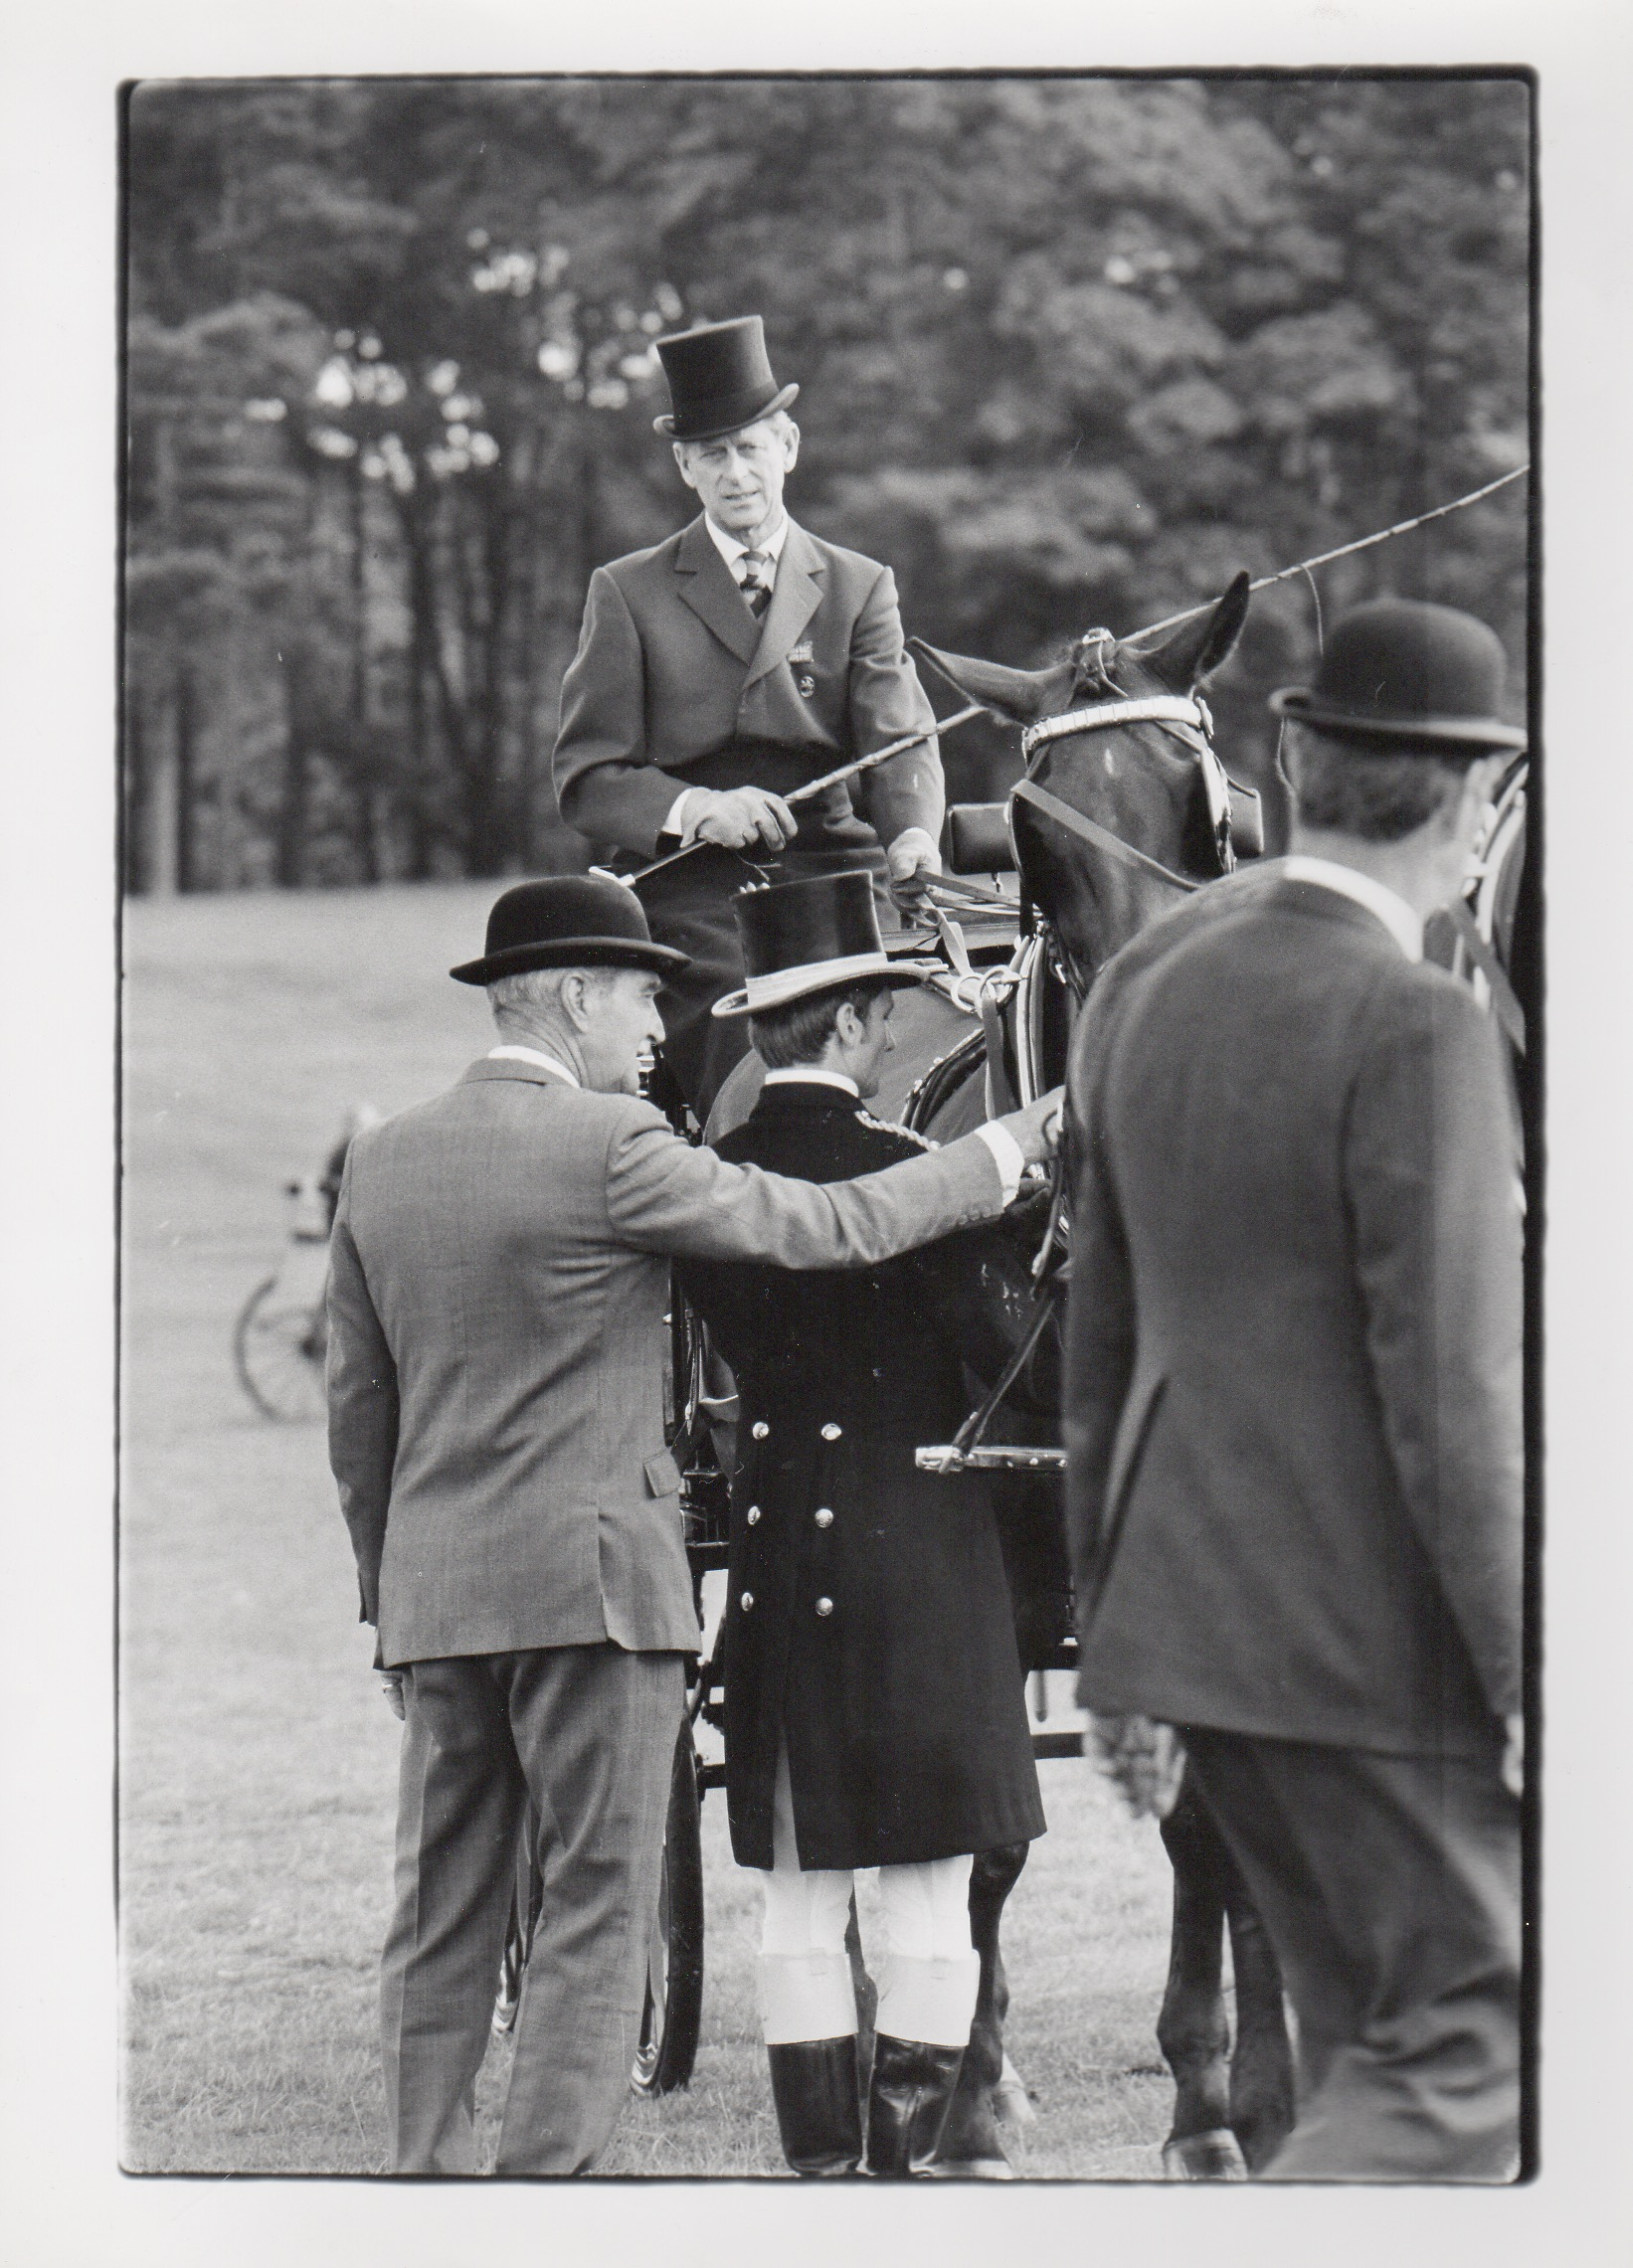 Royalty Prince Philip at Tatton Park, Cheshire 18/7/1981